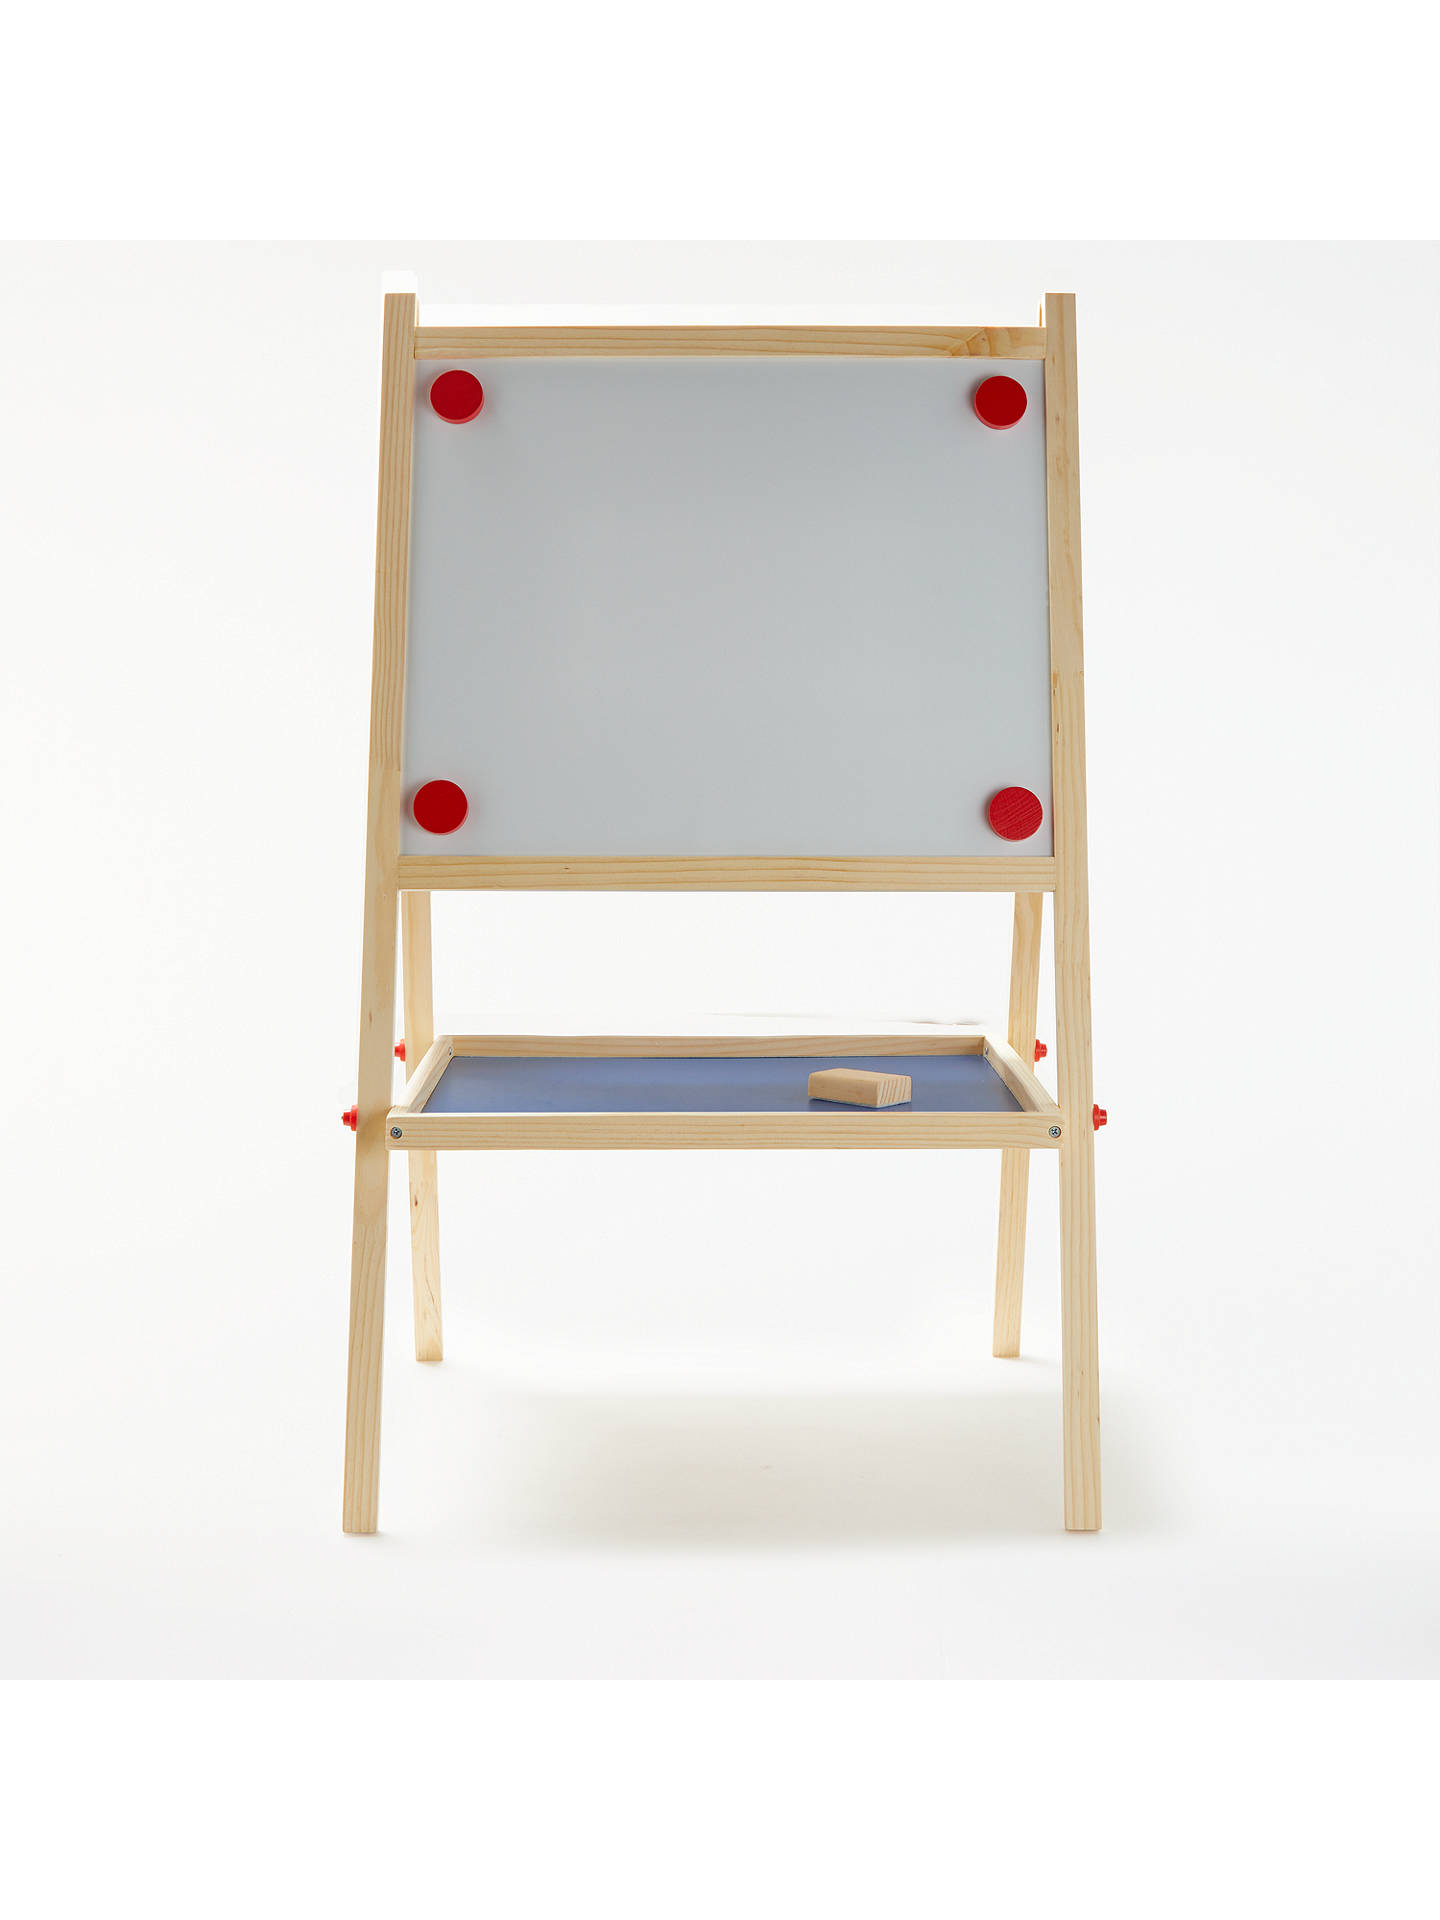 Buy John Lewis & Partners Chalkboard and Easel Online at johnlewis.com